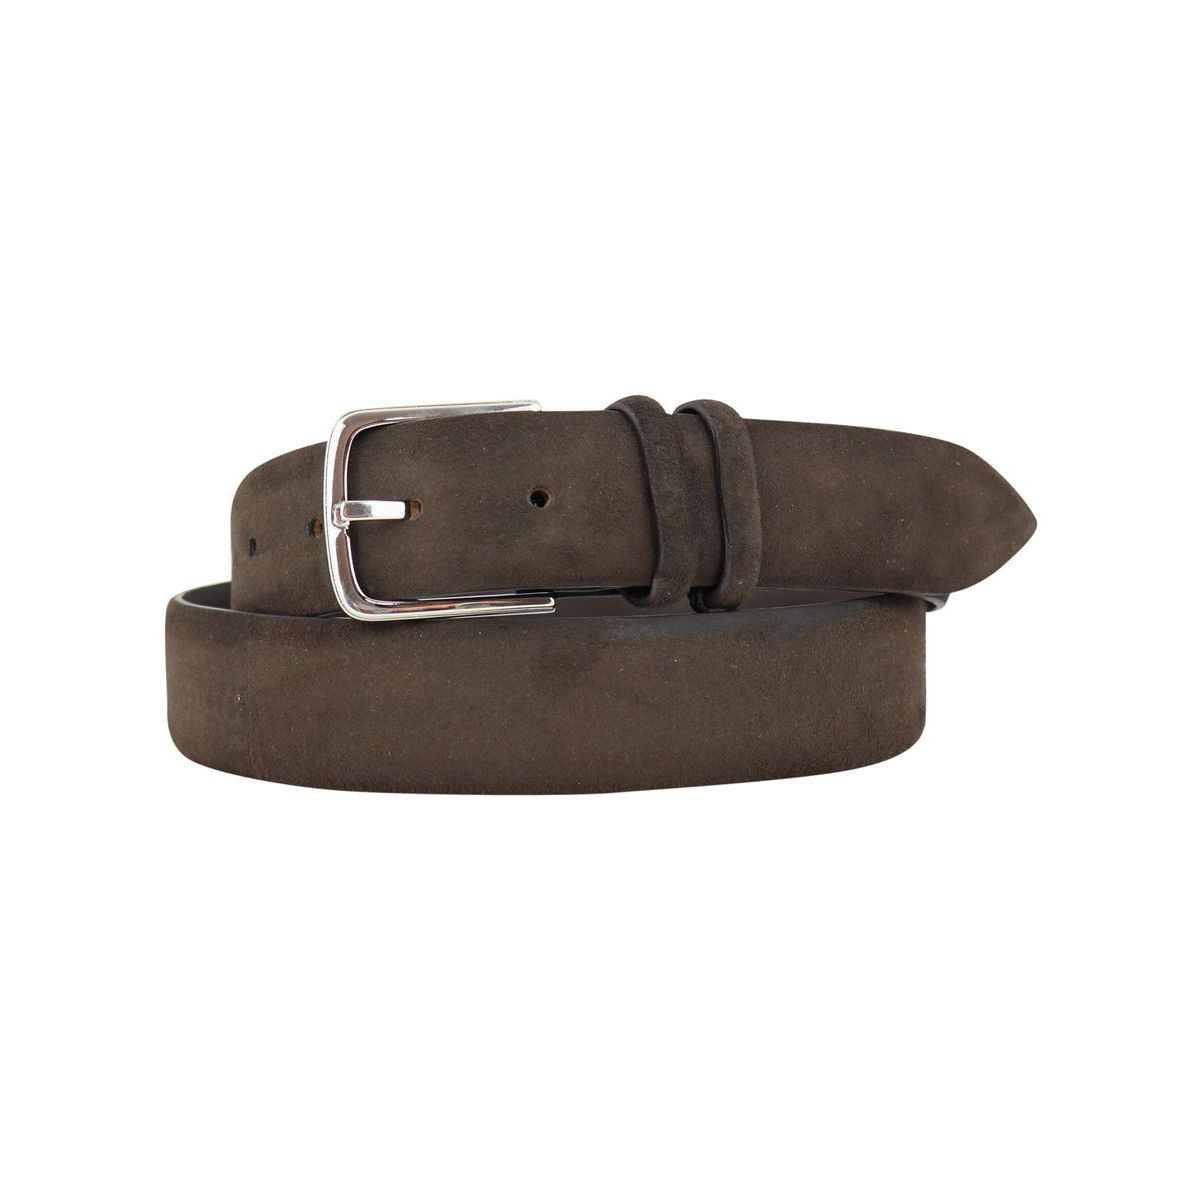 Suede belt with double loop Moro Orciani